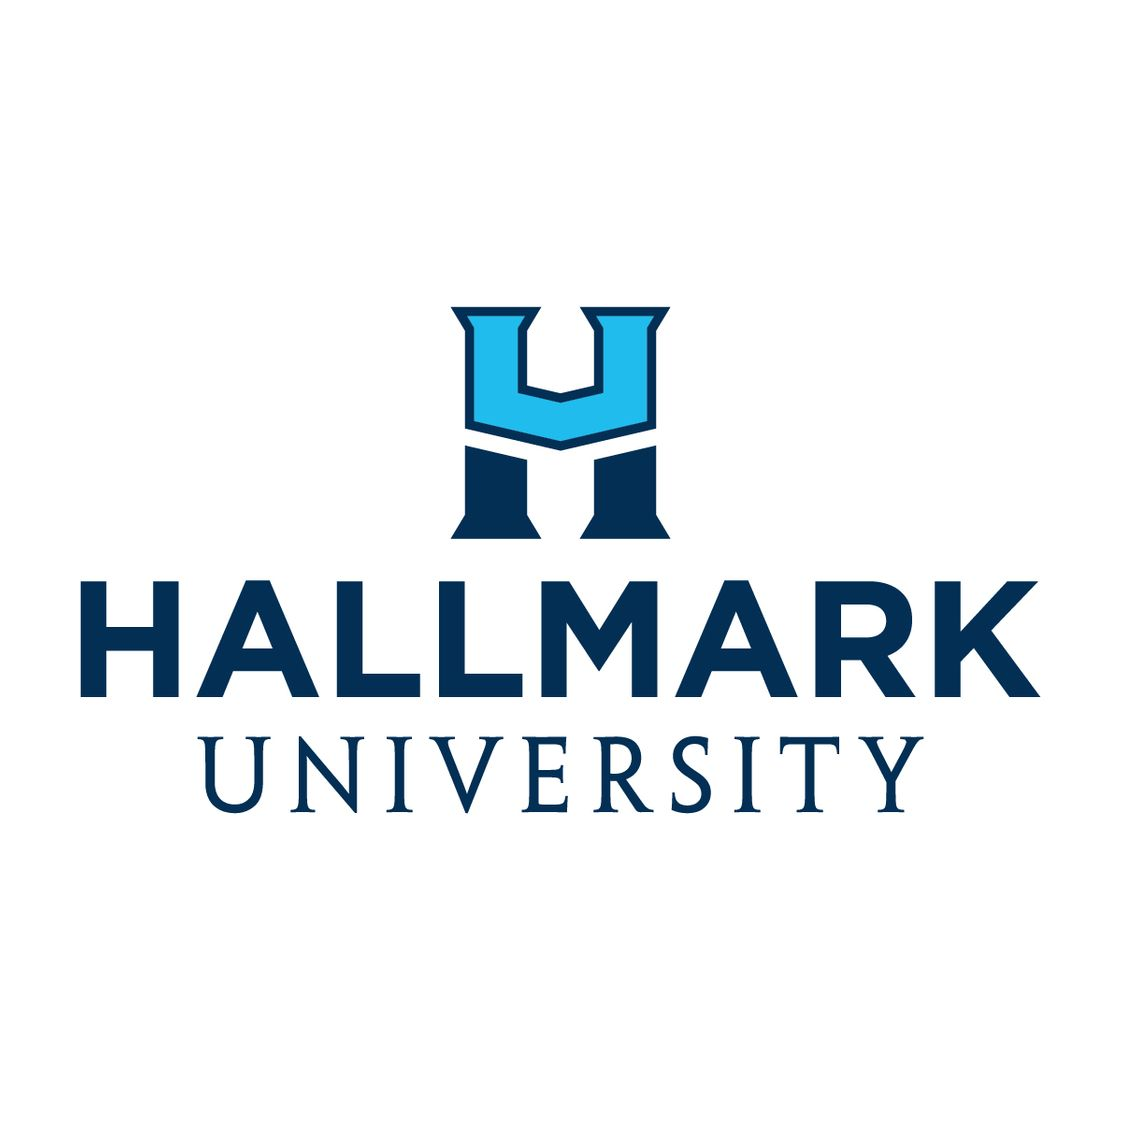 Hallmark University Photo - Hallmark University, a nonprofit college located in San Antonio, TX